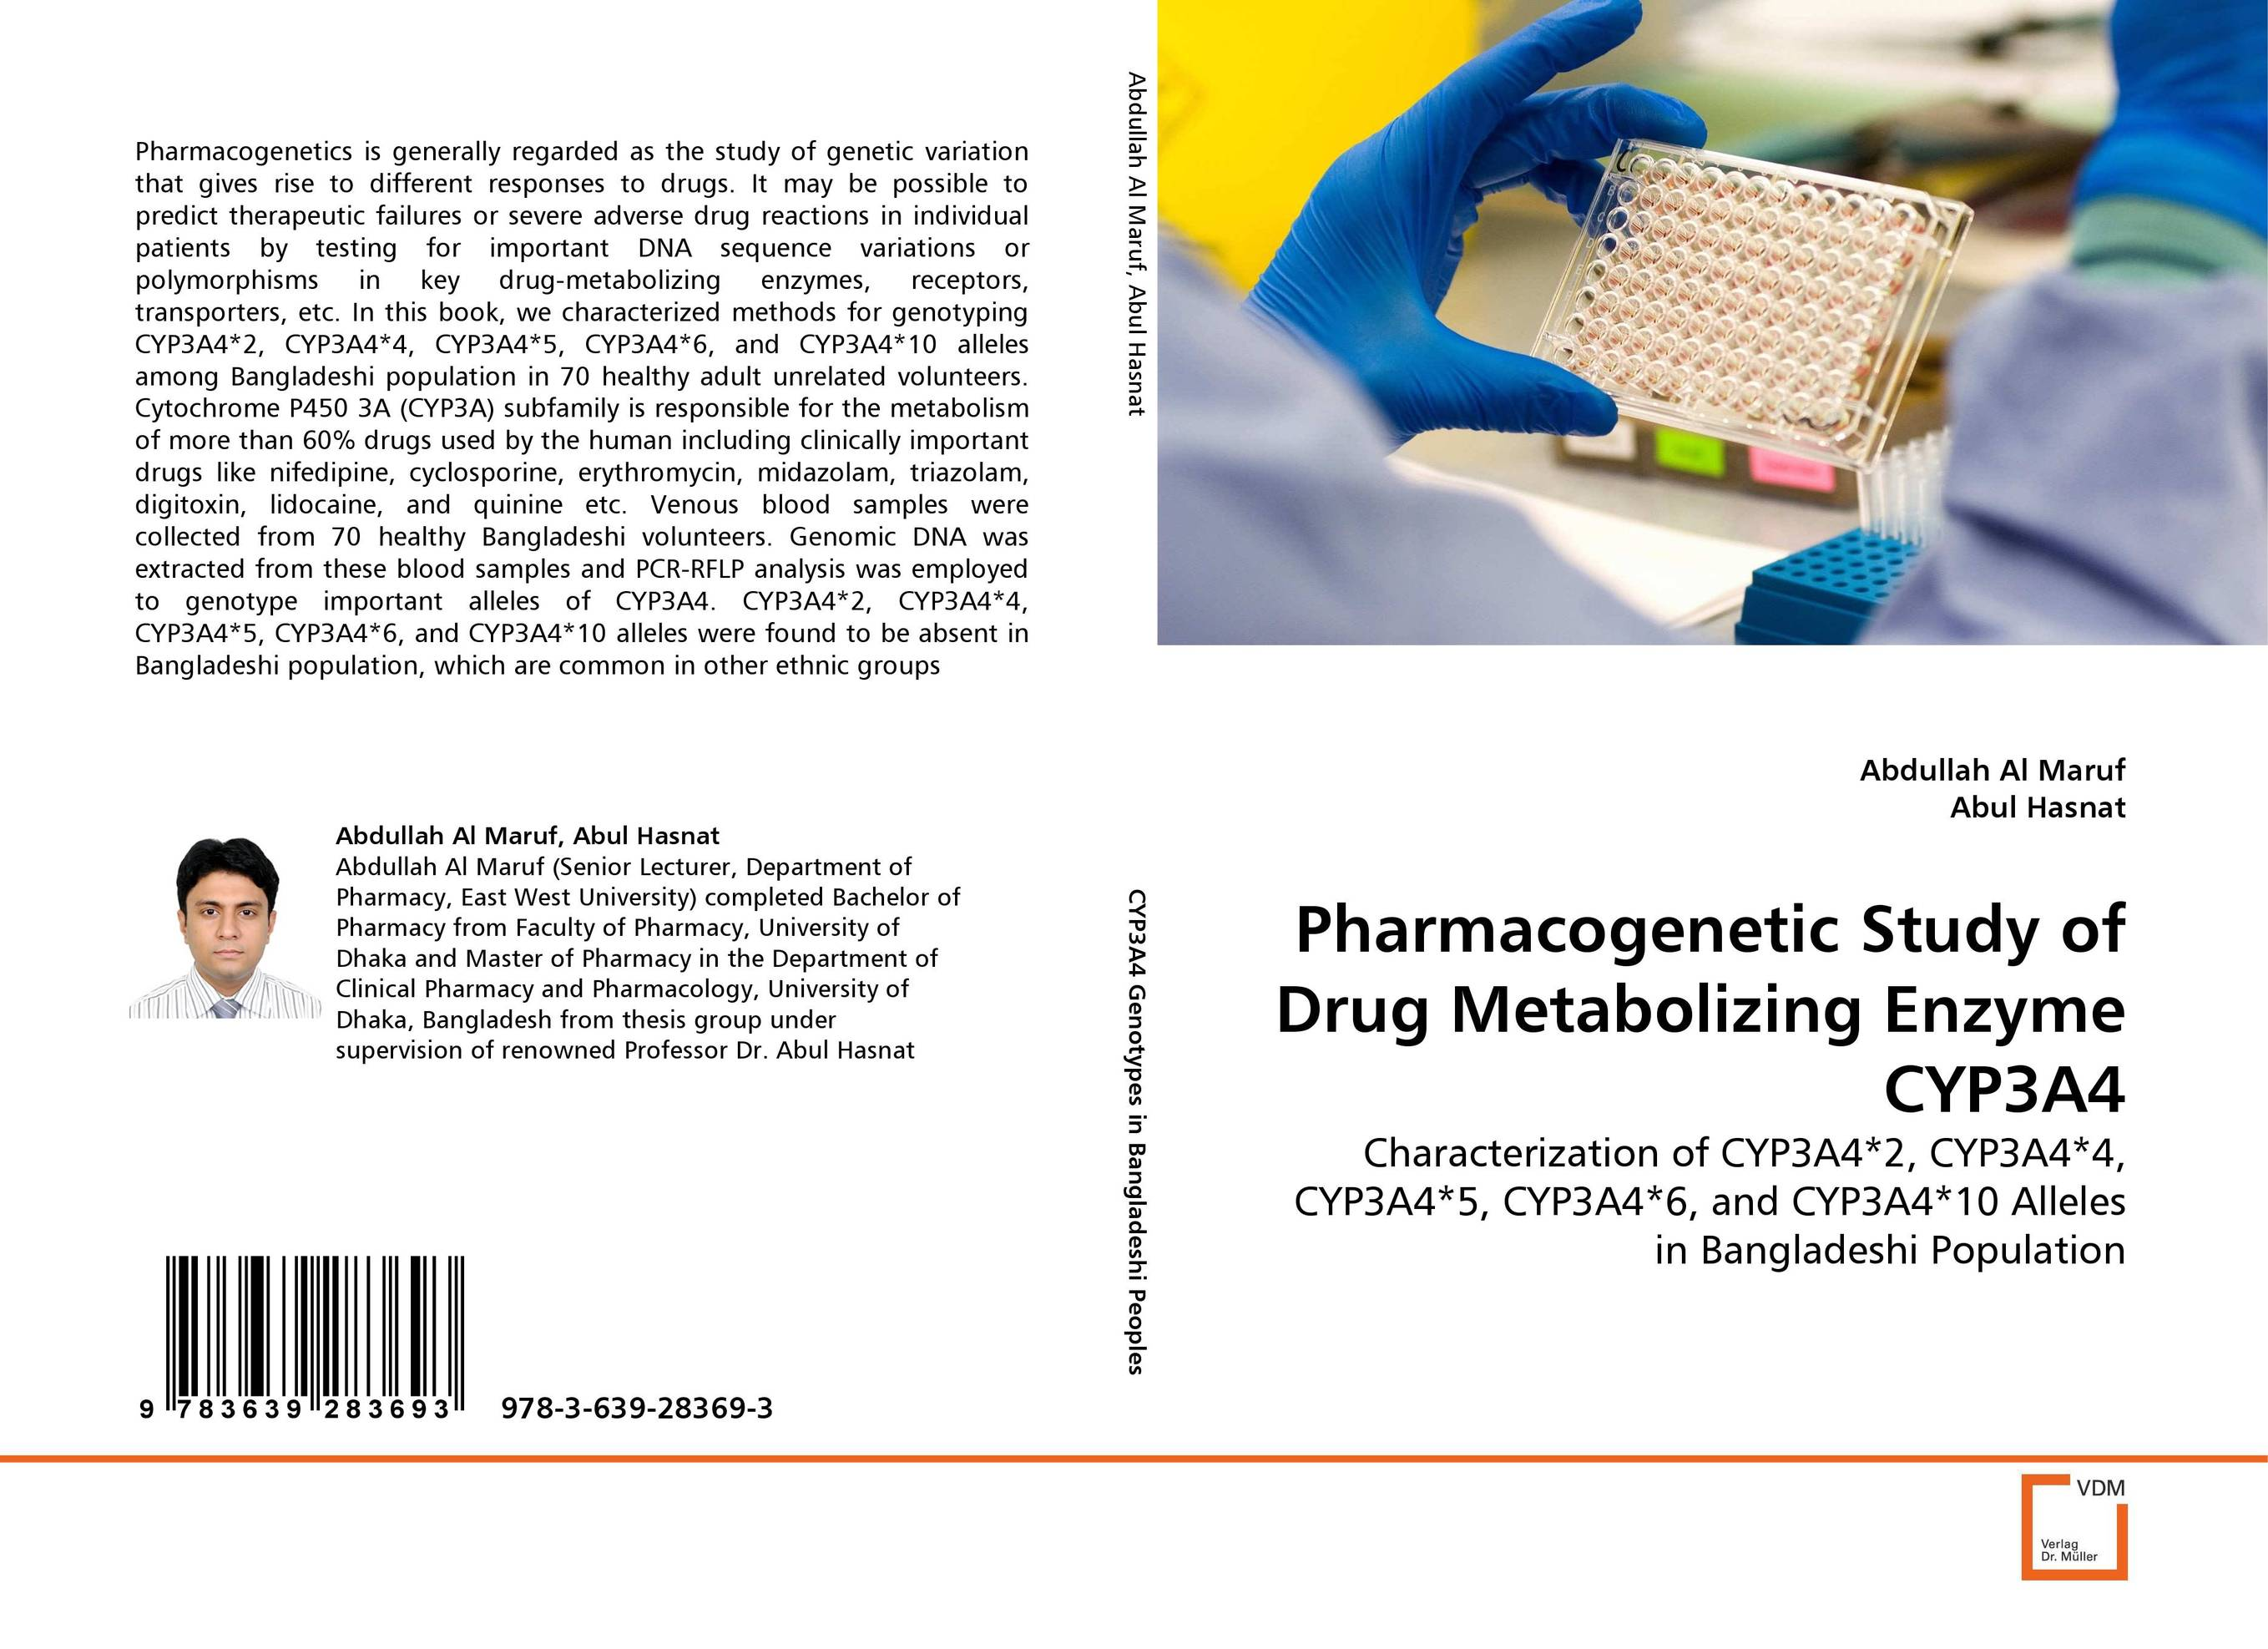 Pharmacogenetic Study of Drug Metabolizing Enzyme CYP3A4